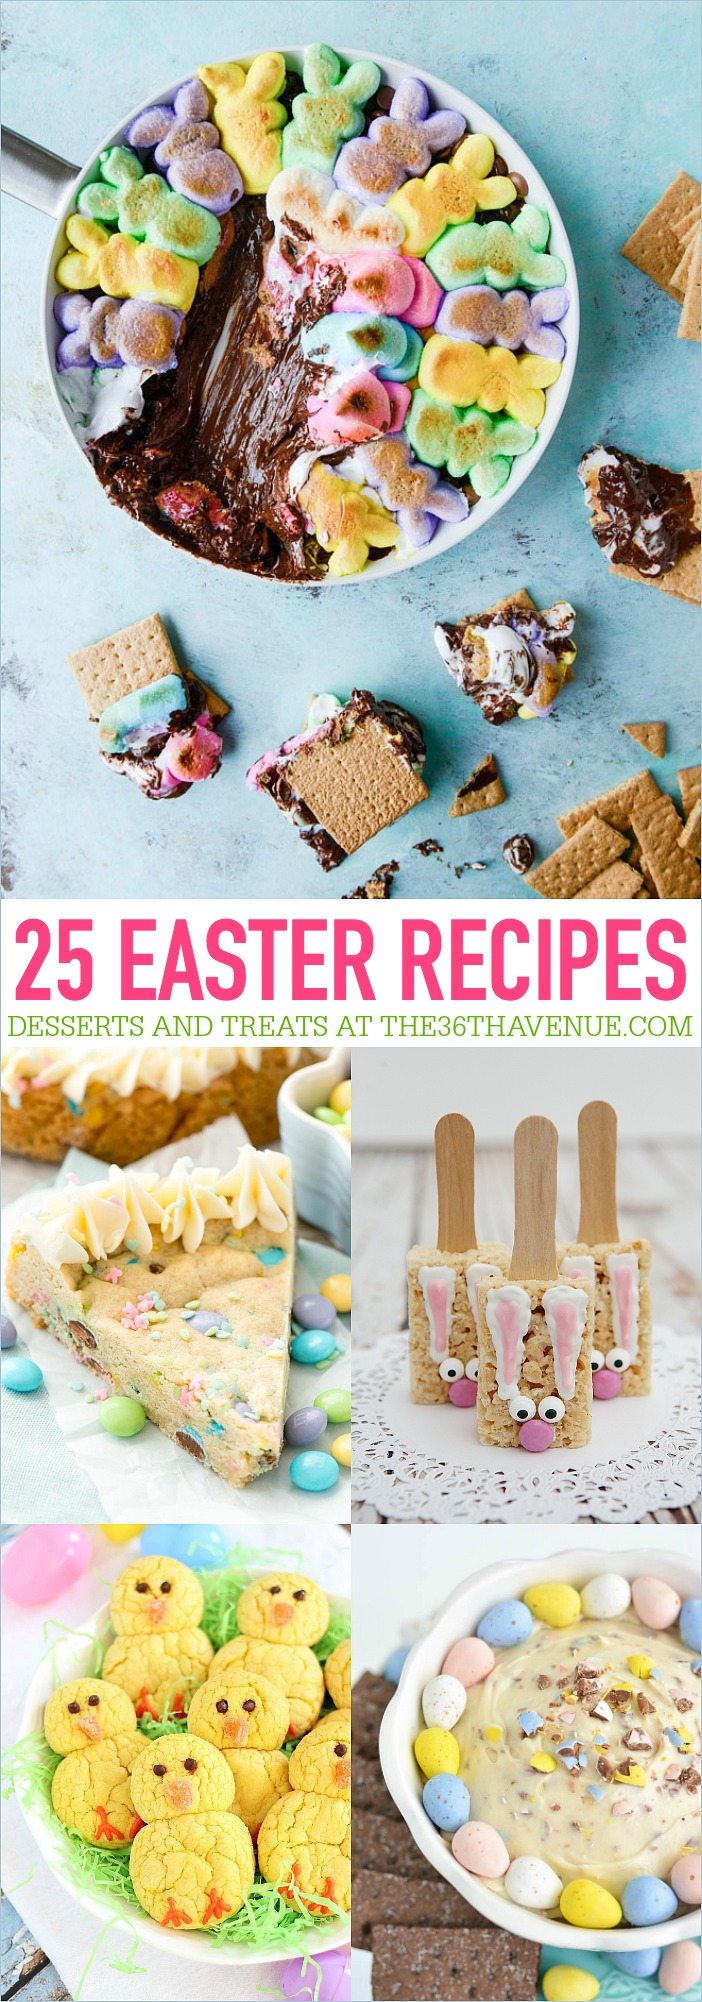 Easter Recipes at the36thavenue.com